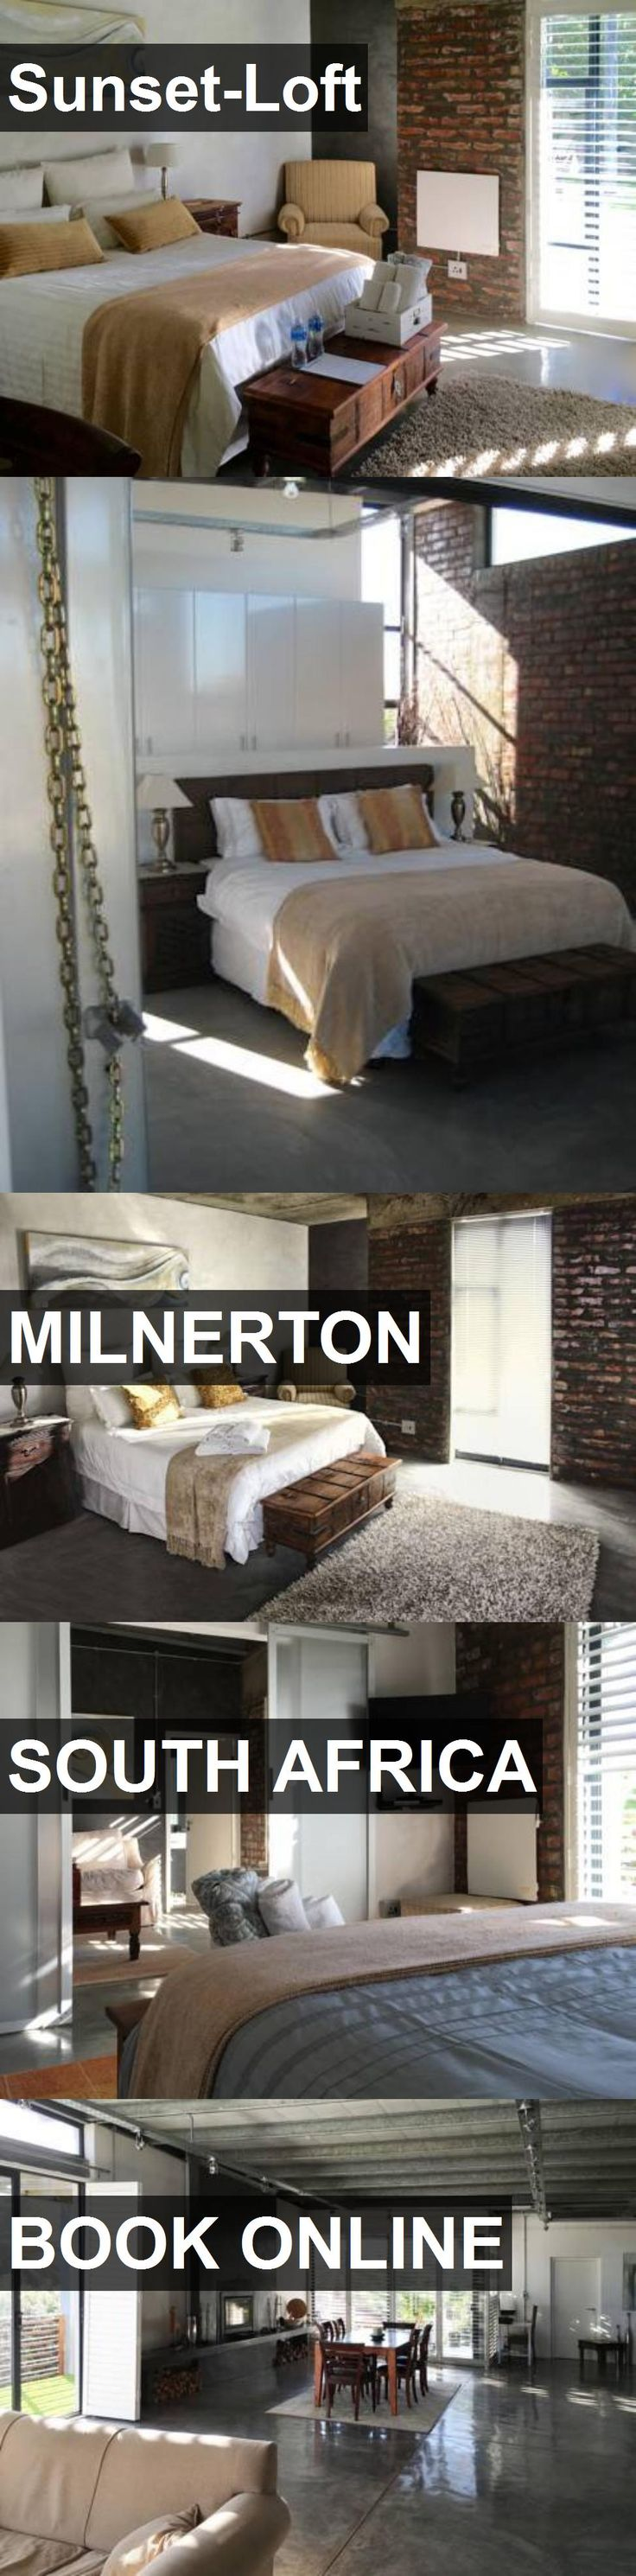 Hotel Sunset-Loft in Milnerton, South Africa. For more information, photos, reviews and best prices please follow the link. #SouthAfrica #Milnerton #Sunset-Loft #hotel #travel #vacation